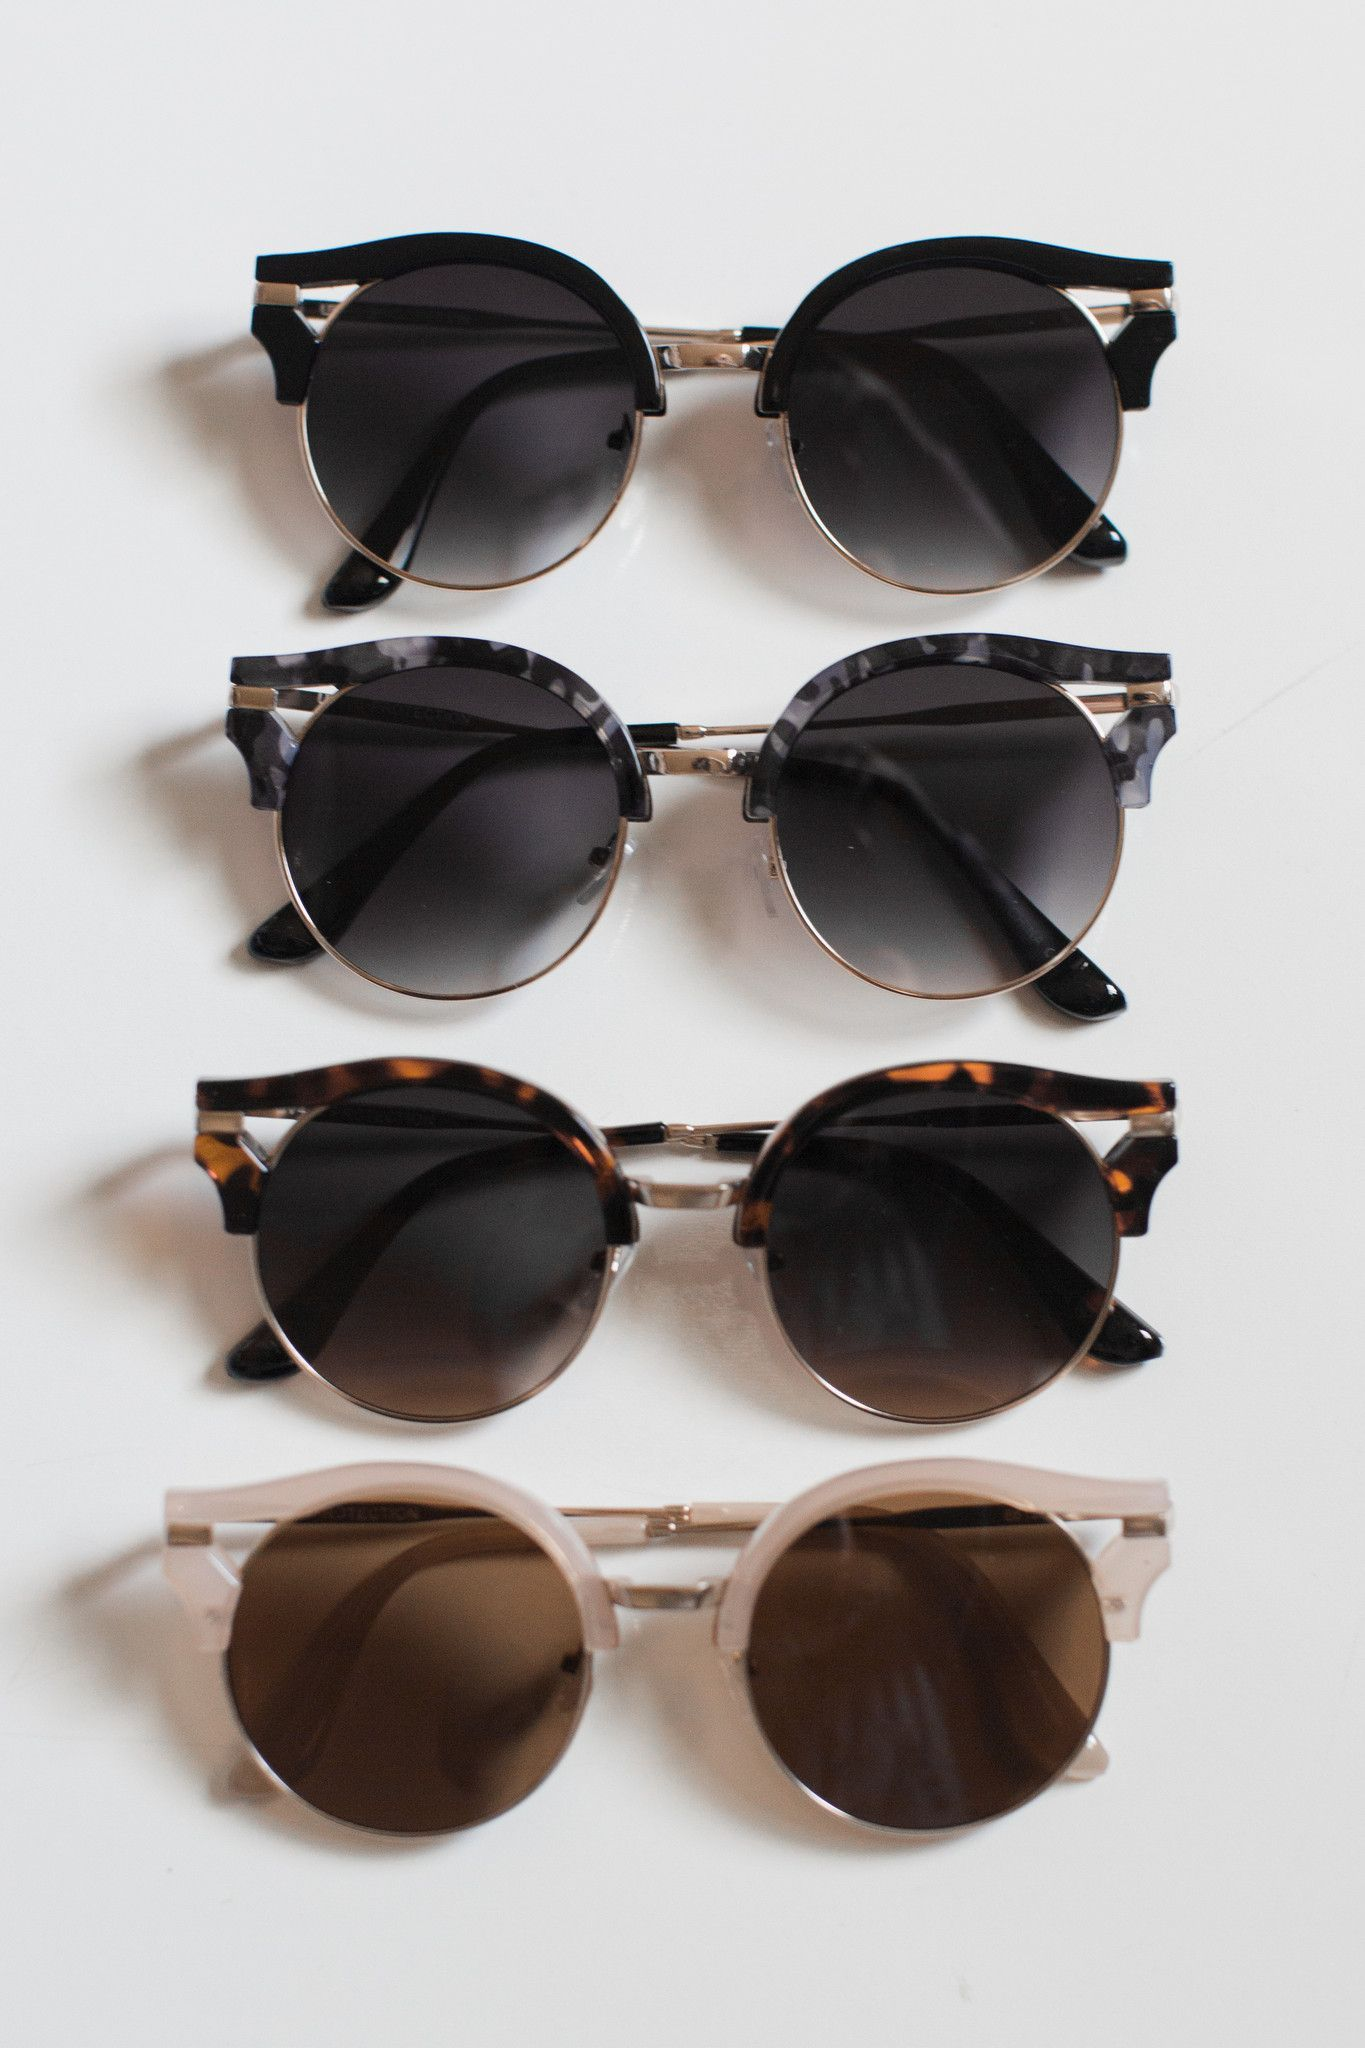 """Vintage inspired round frame sunnies. Measures approx. 5.5"""" x 2.2"""". 100% UV protection. Colors (from top to bottom): Black, Grey, Brown, Peach - Imported"""